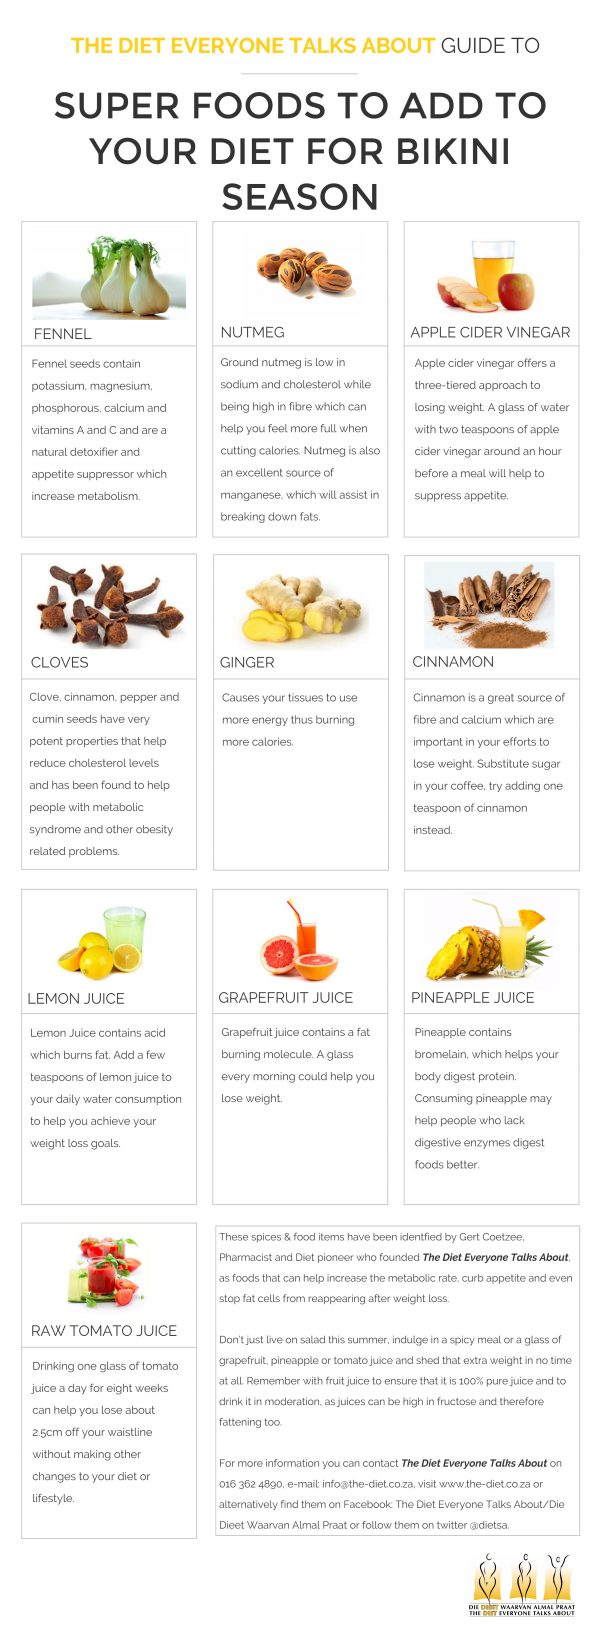 Super Foods infographic from The Diet Everyone Talks About FINAL e1477988209690 Super foods and drinks to add to your diet for bikini season